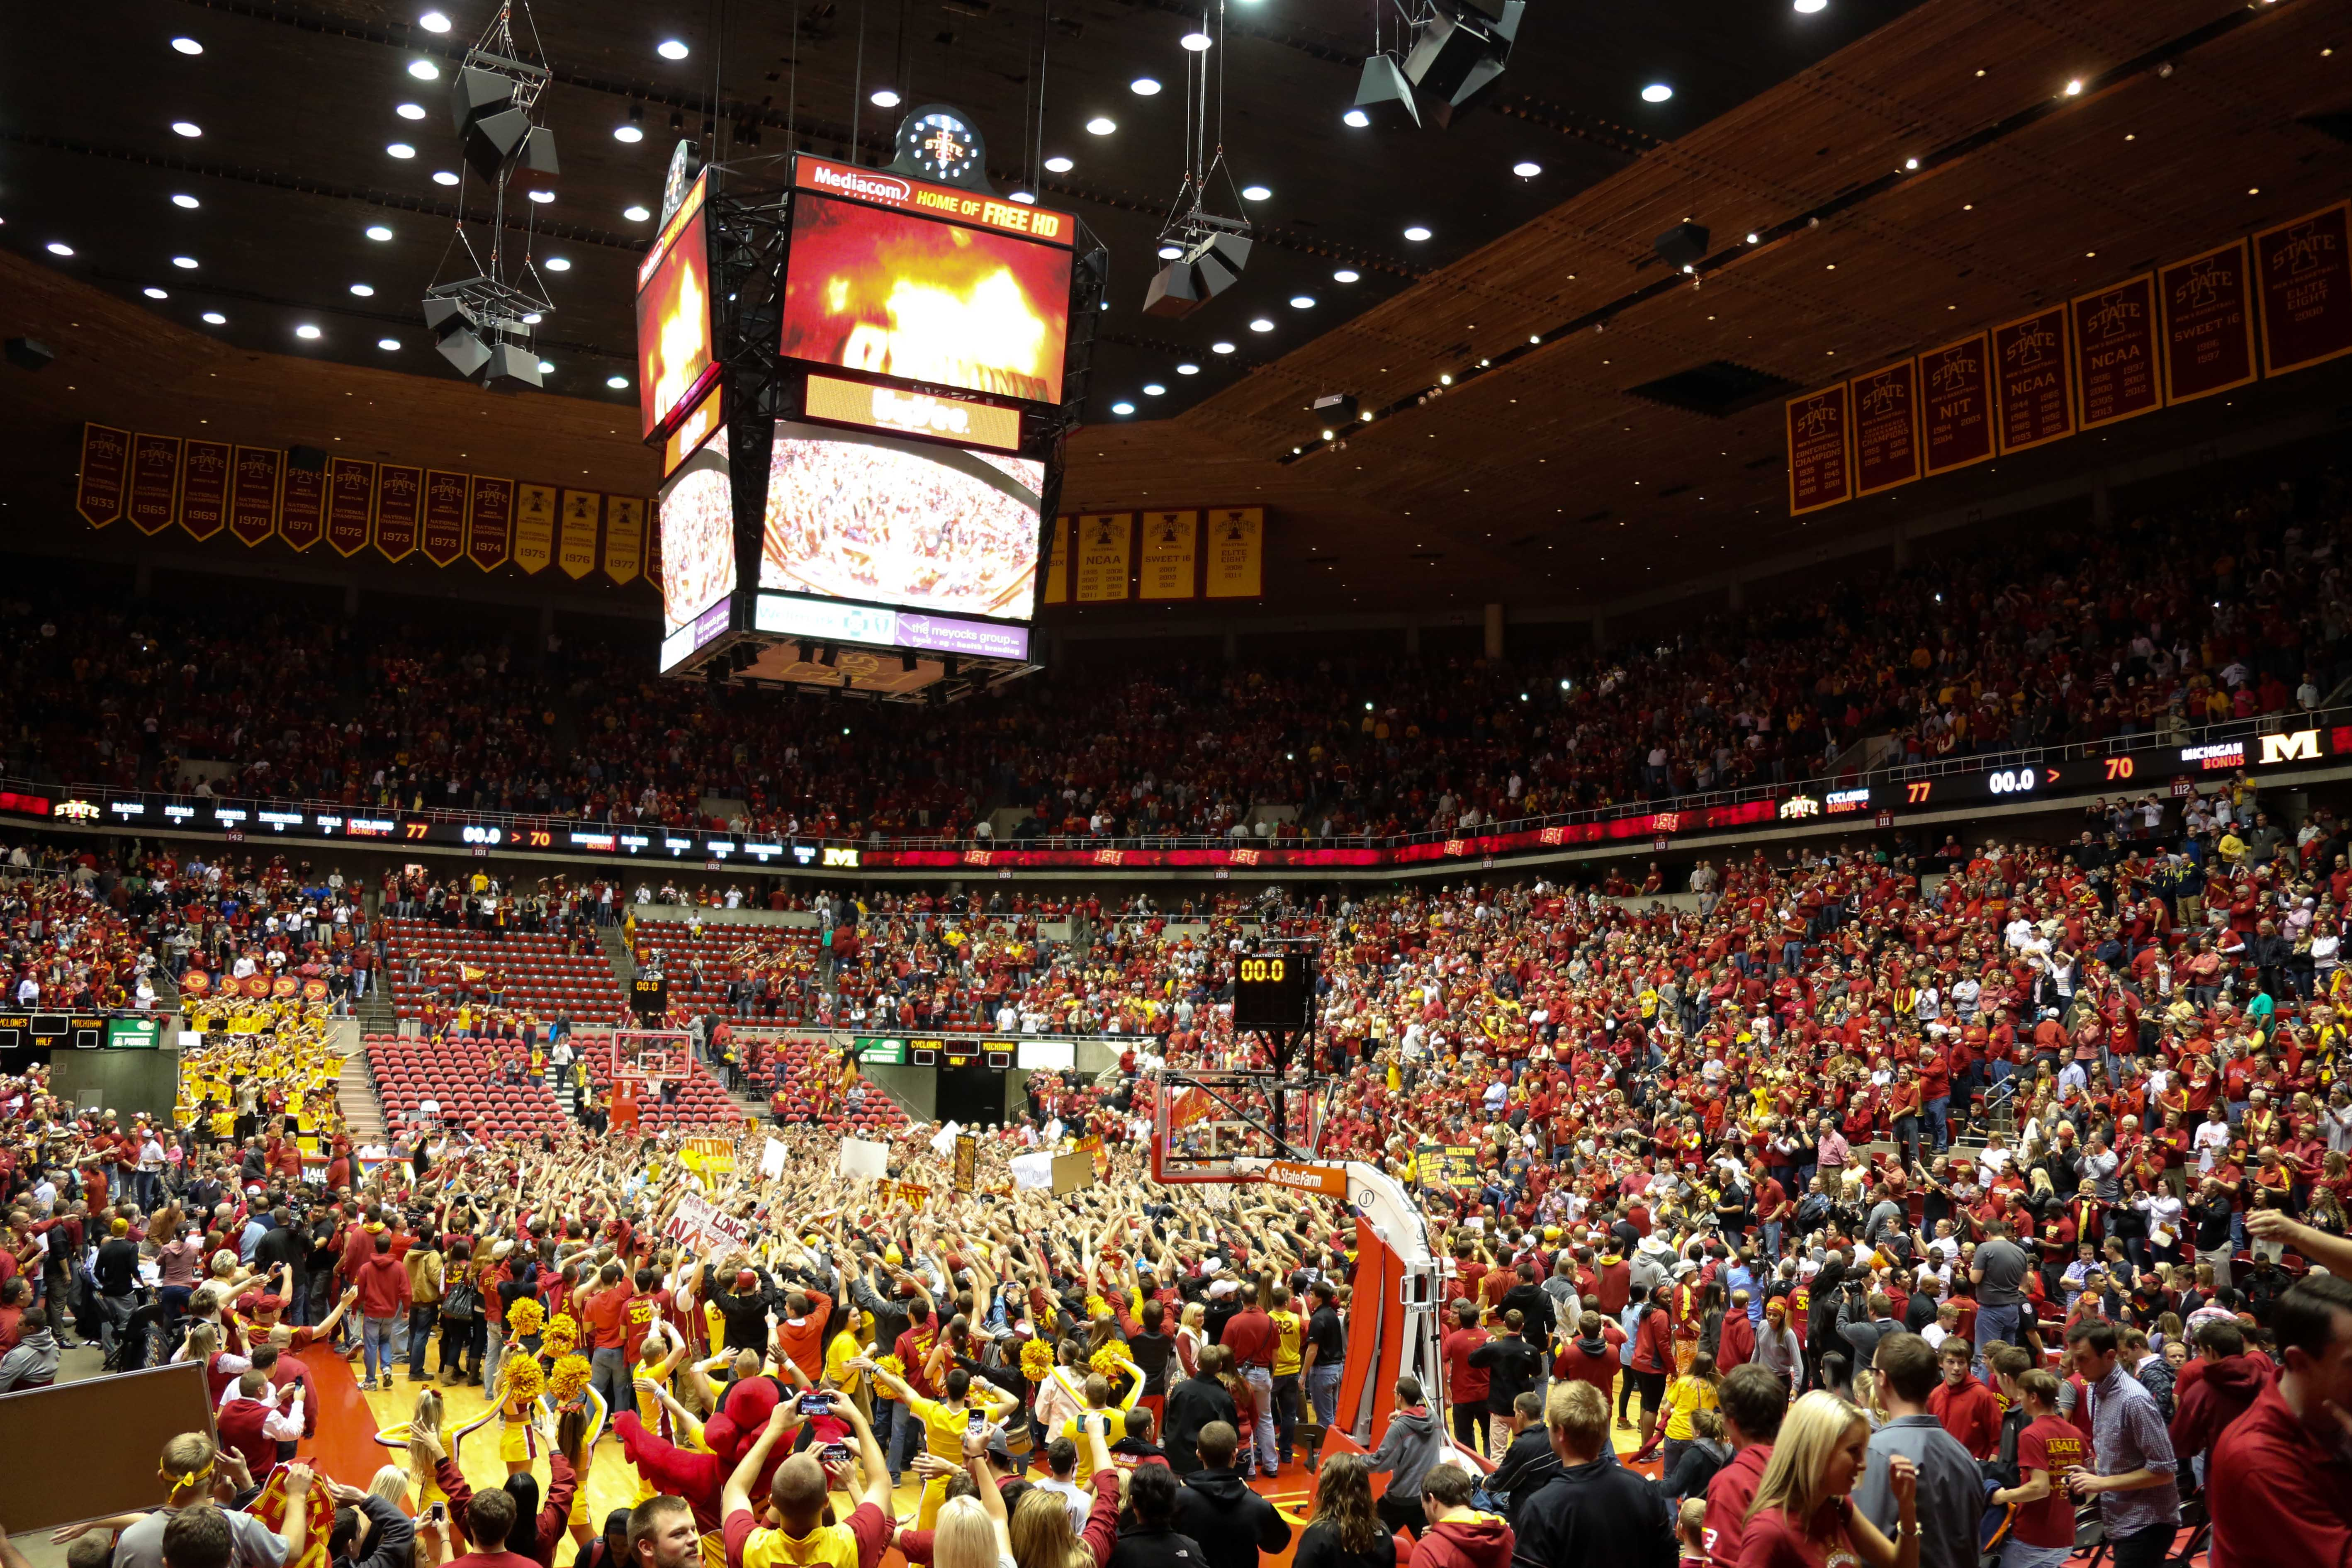 Iowa State 77, Michigan 70-29